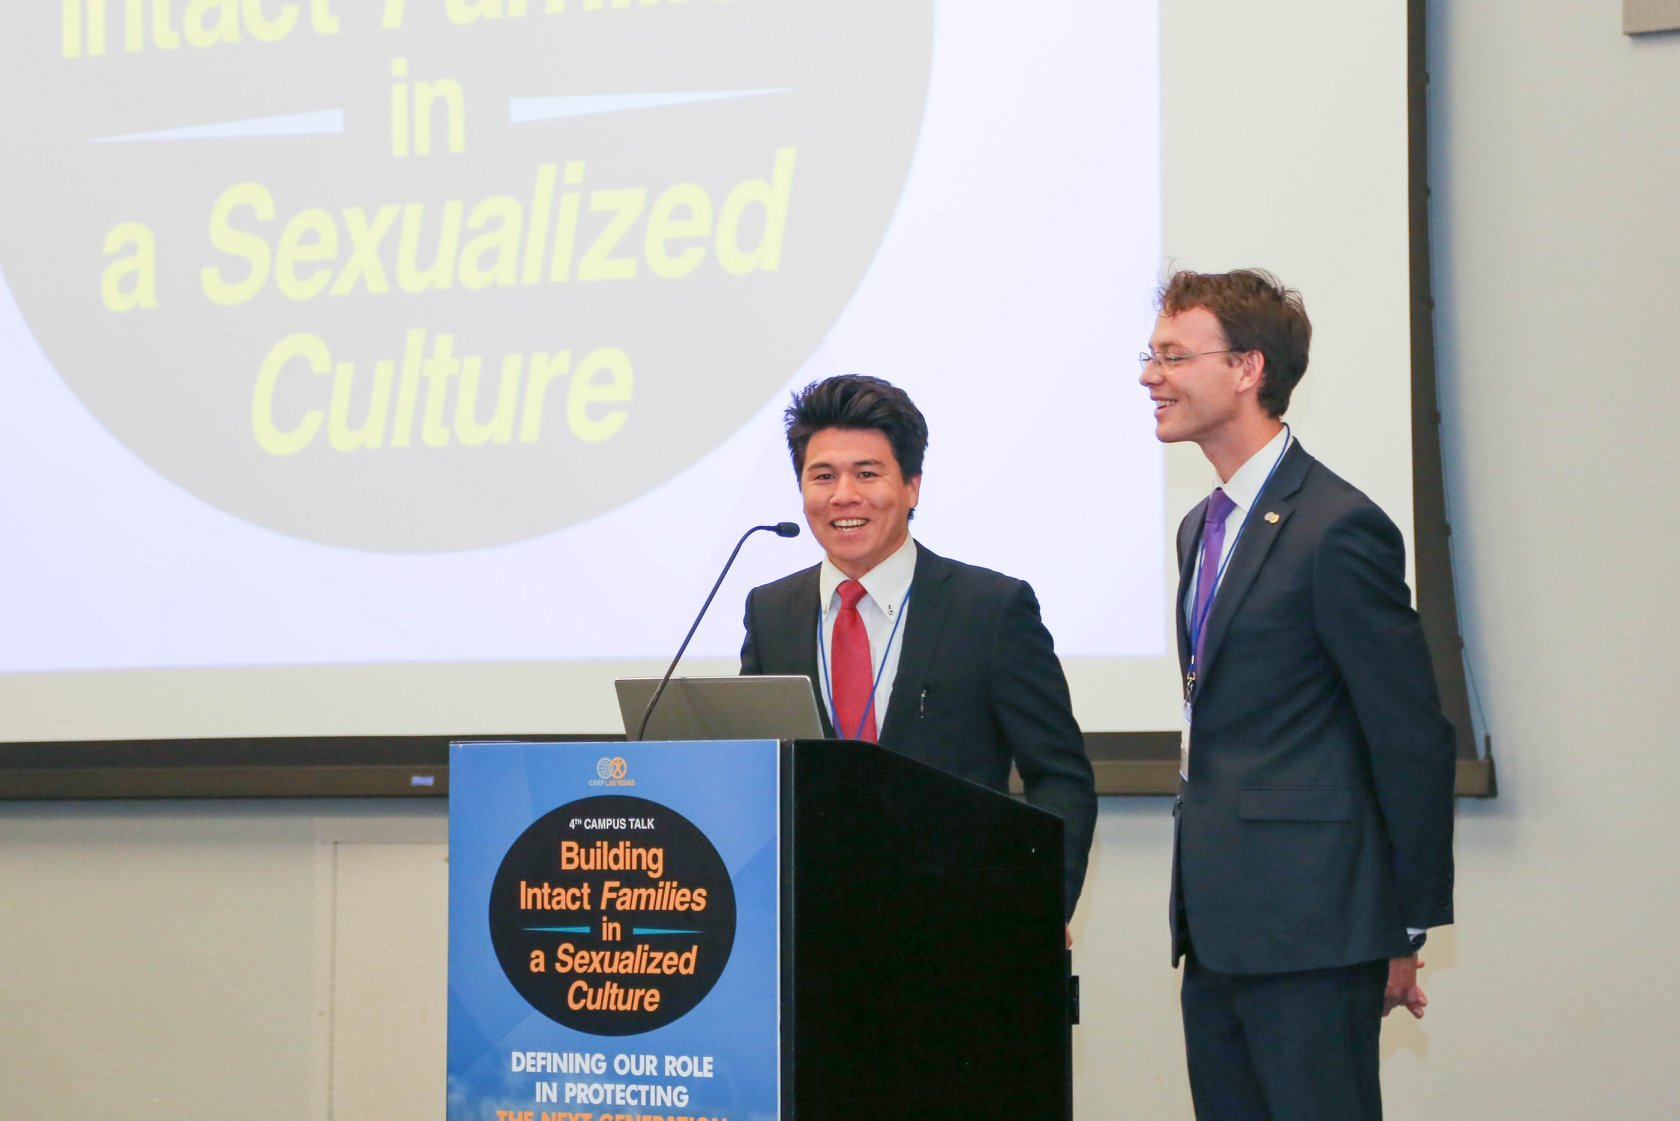 Emcees, Chungbom Katayama (left) and Jinil Fleischman (right), welcome everyone to the conference.